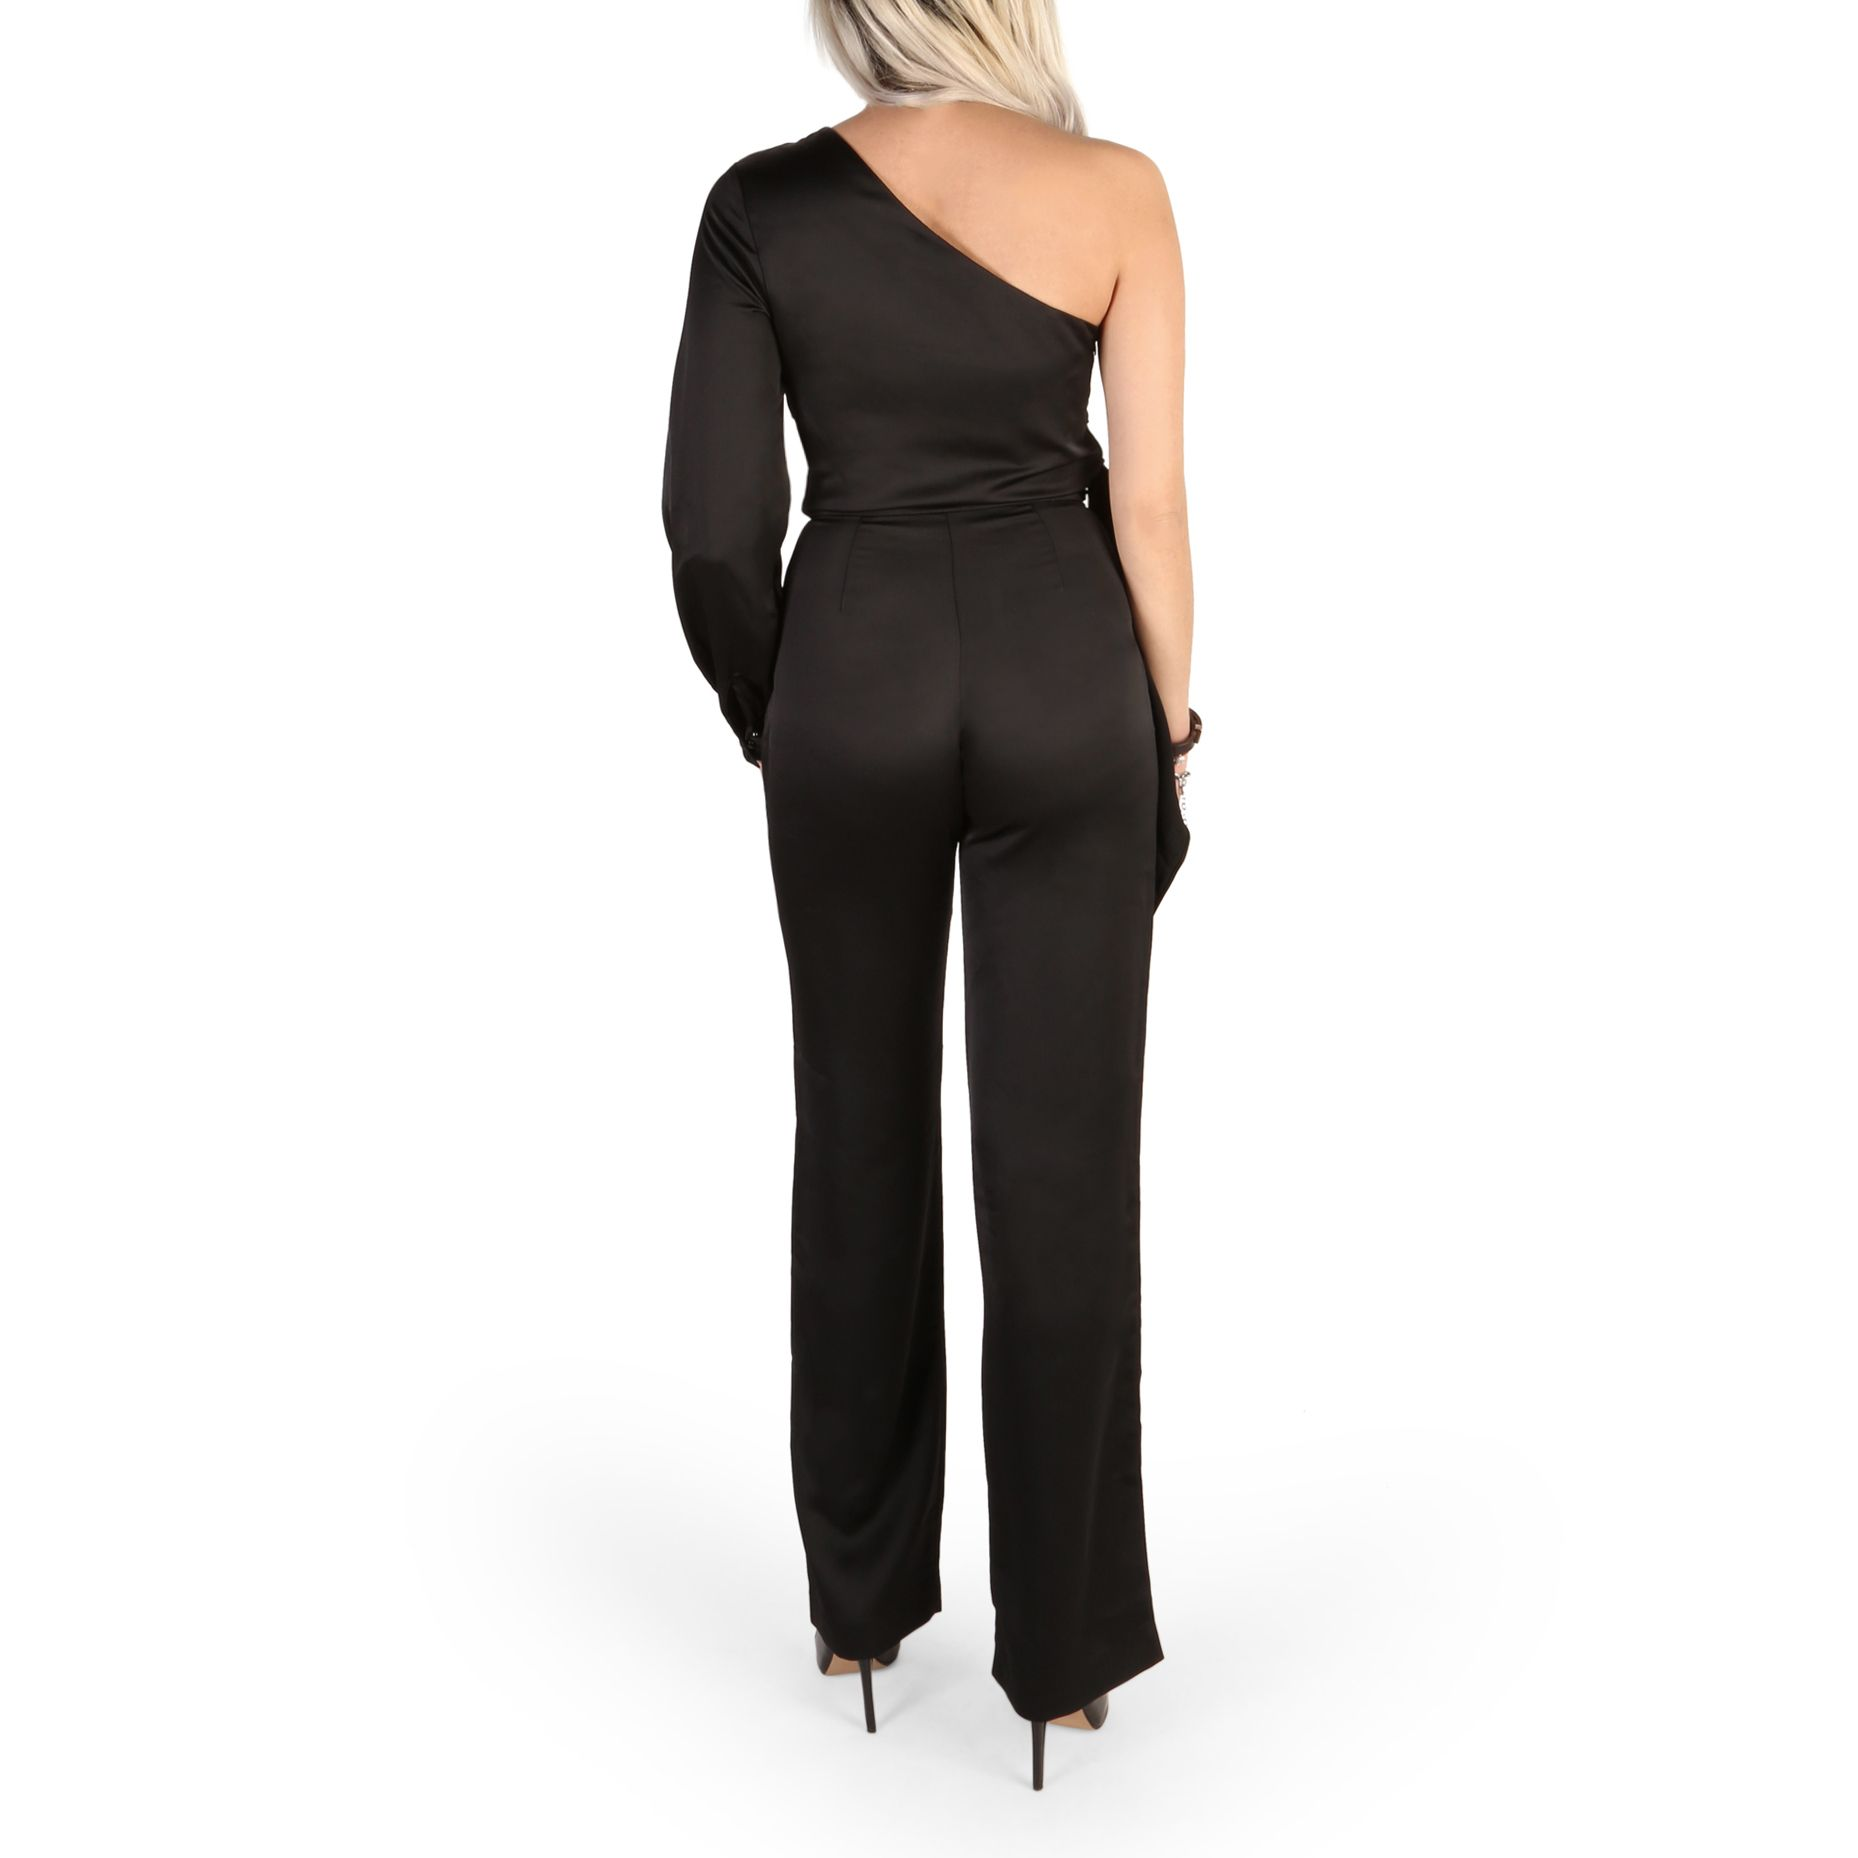 Guess Womens Tracksuits